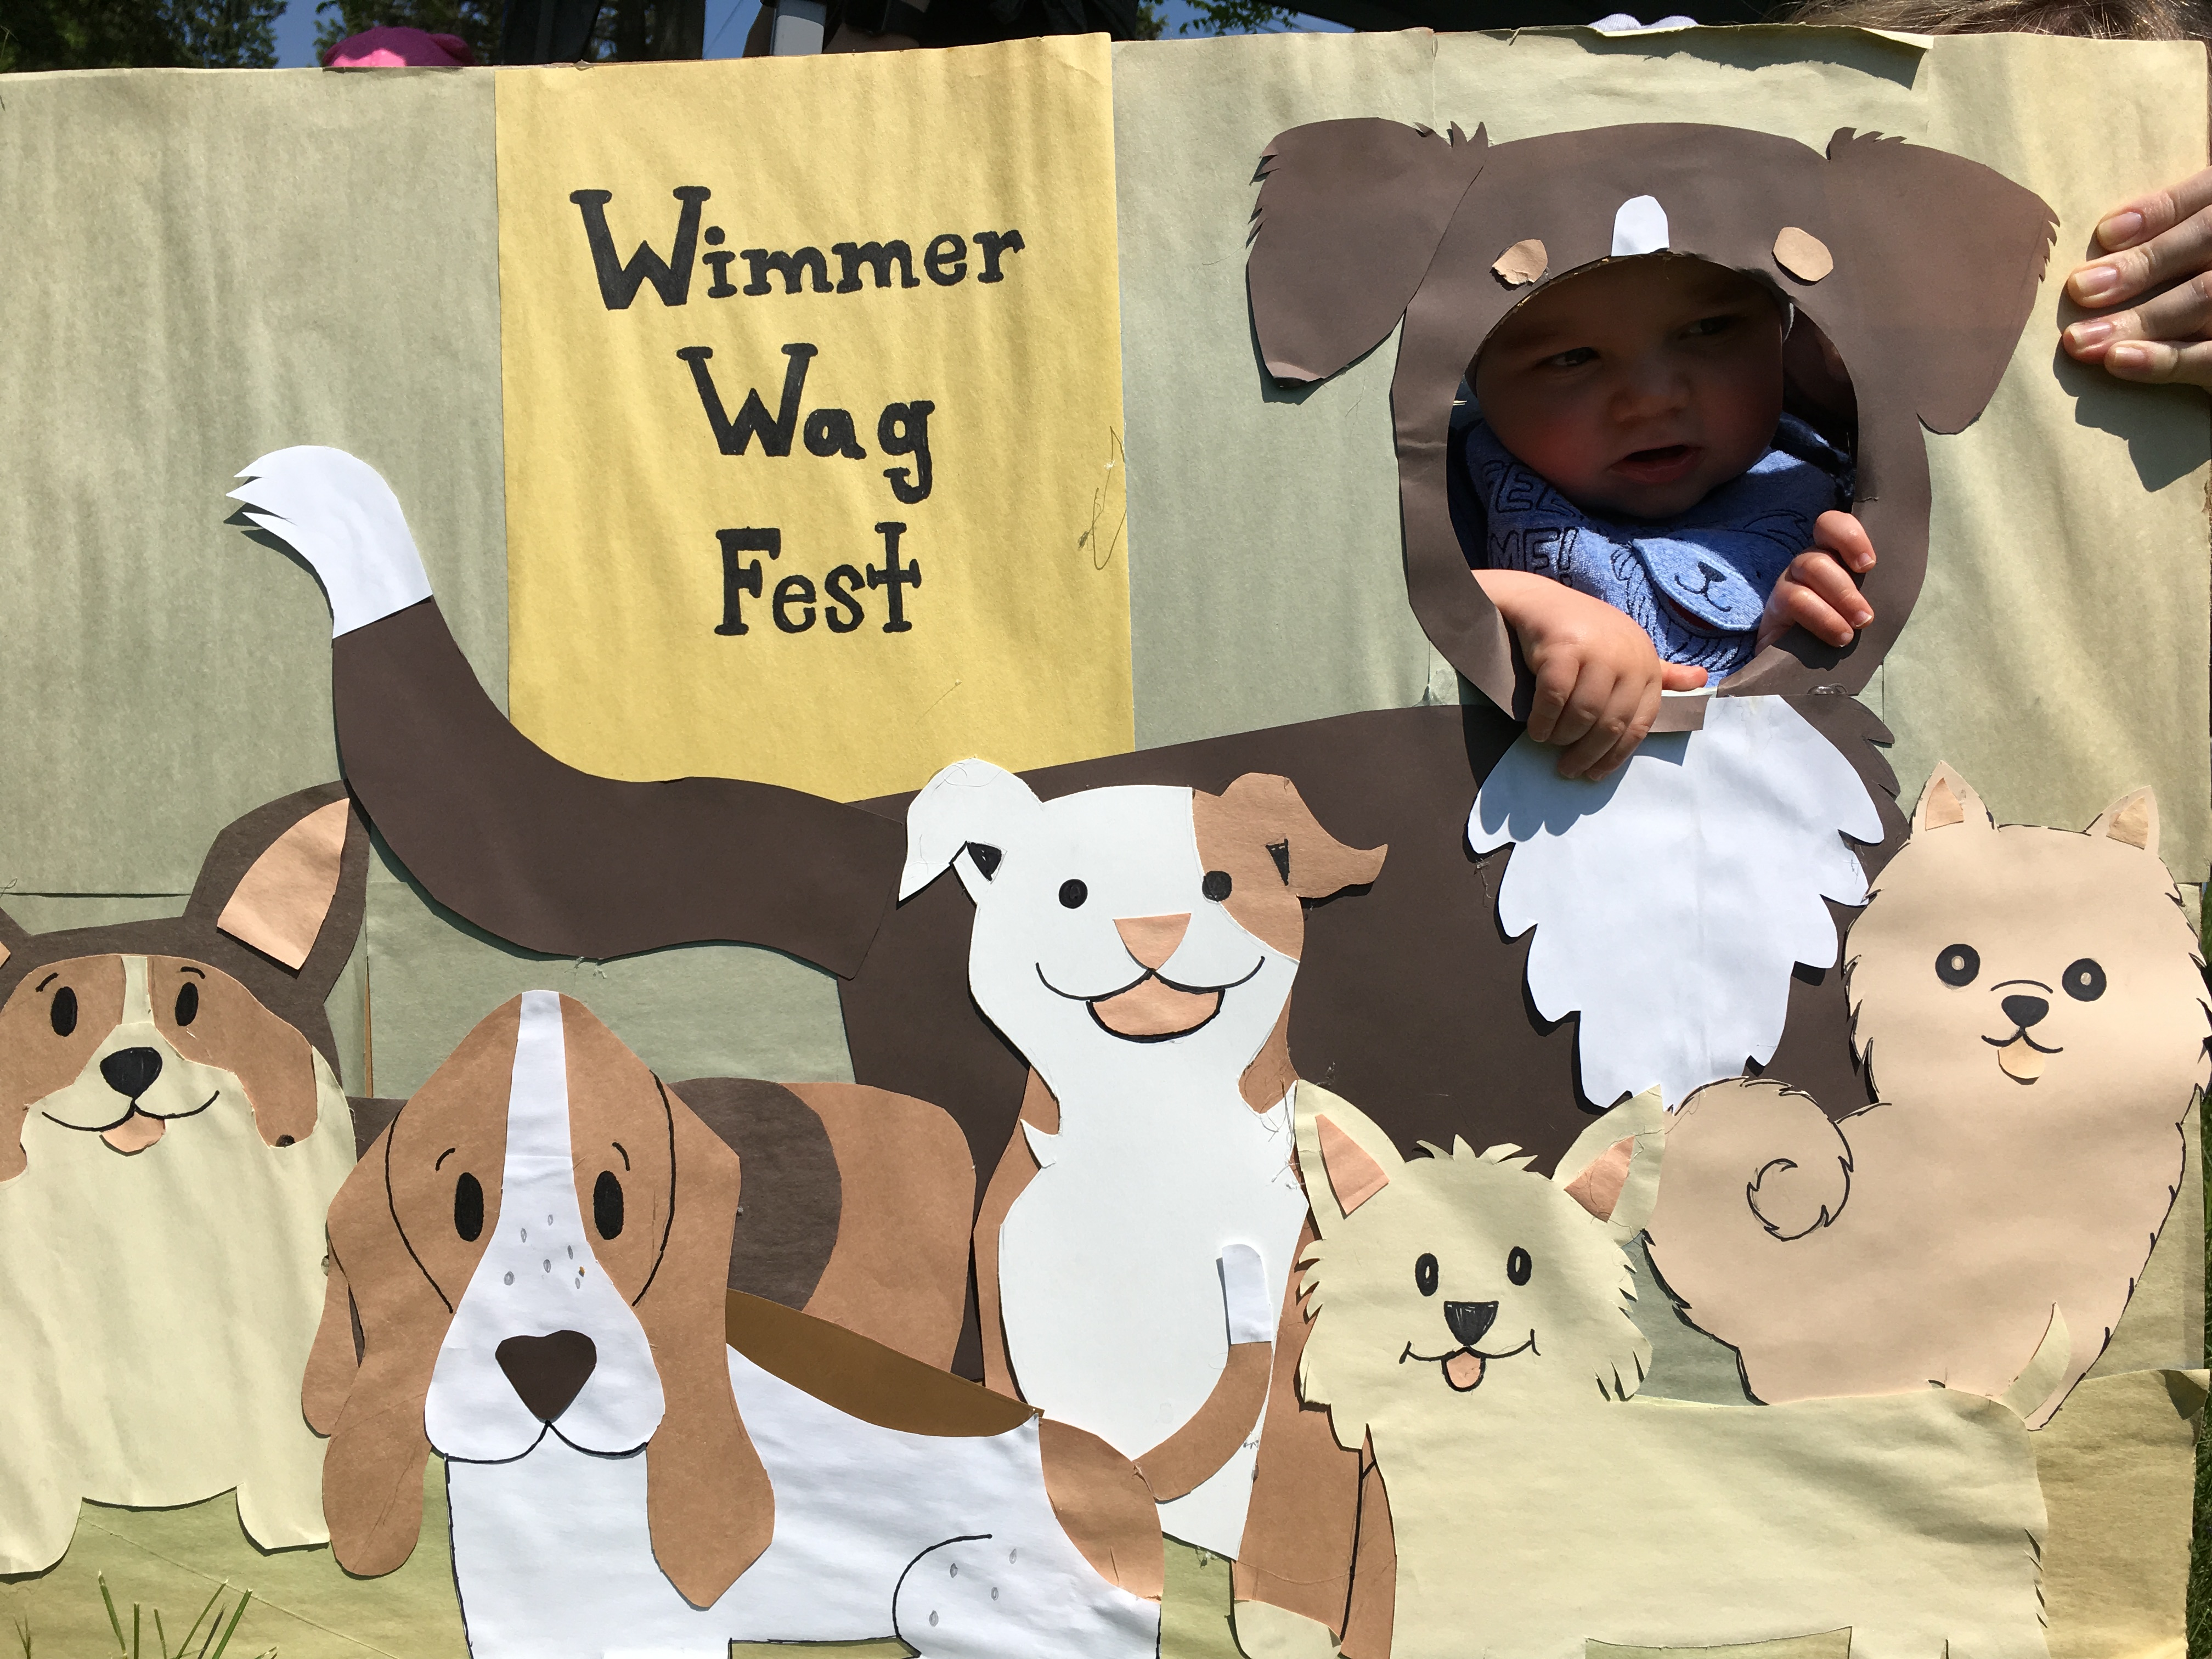 wimmer wag fest